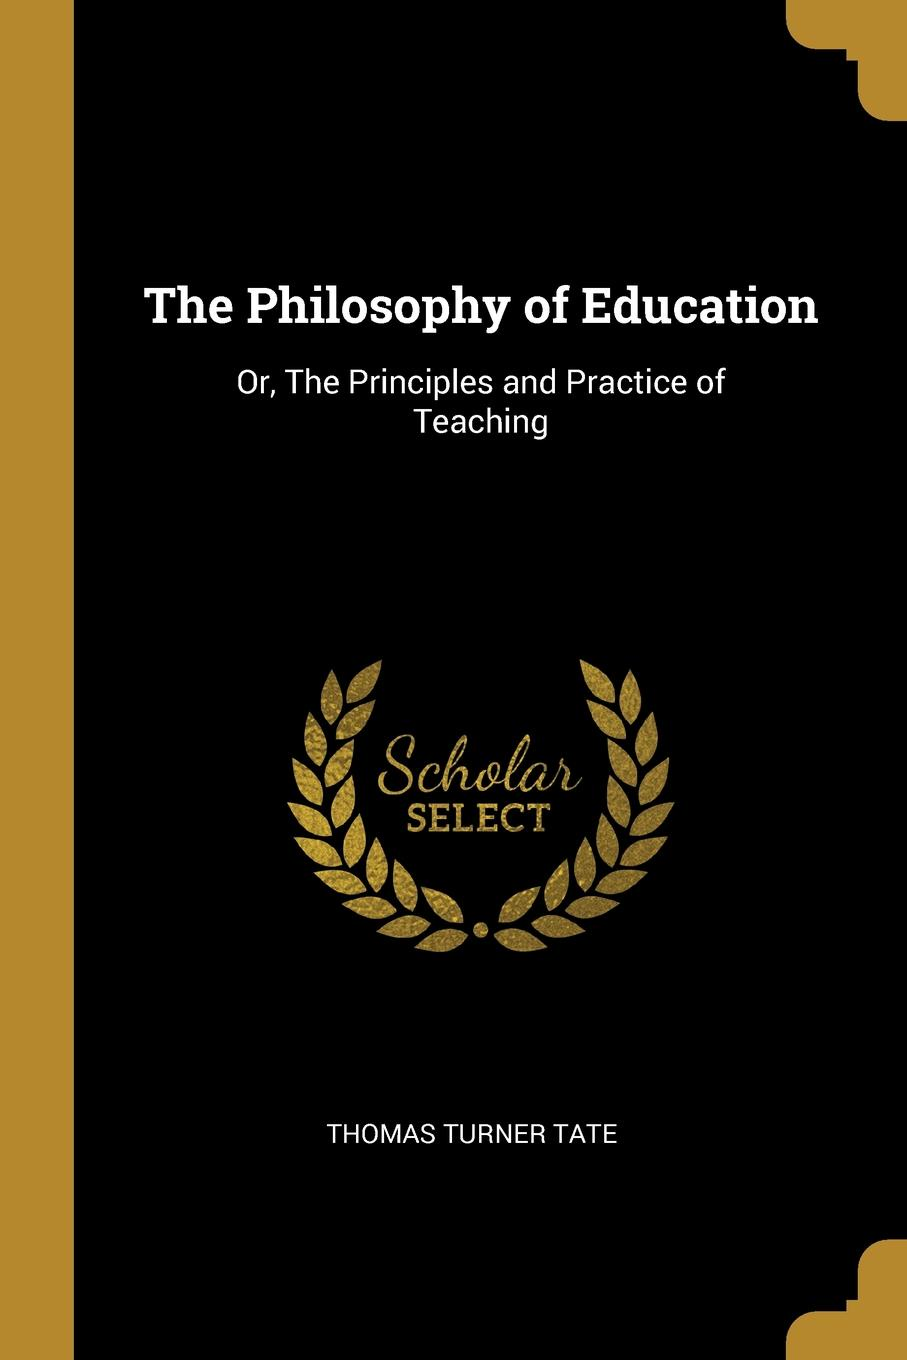 hedonism philosophy of education - HD907×1360